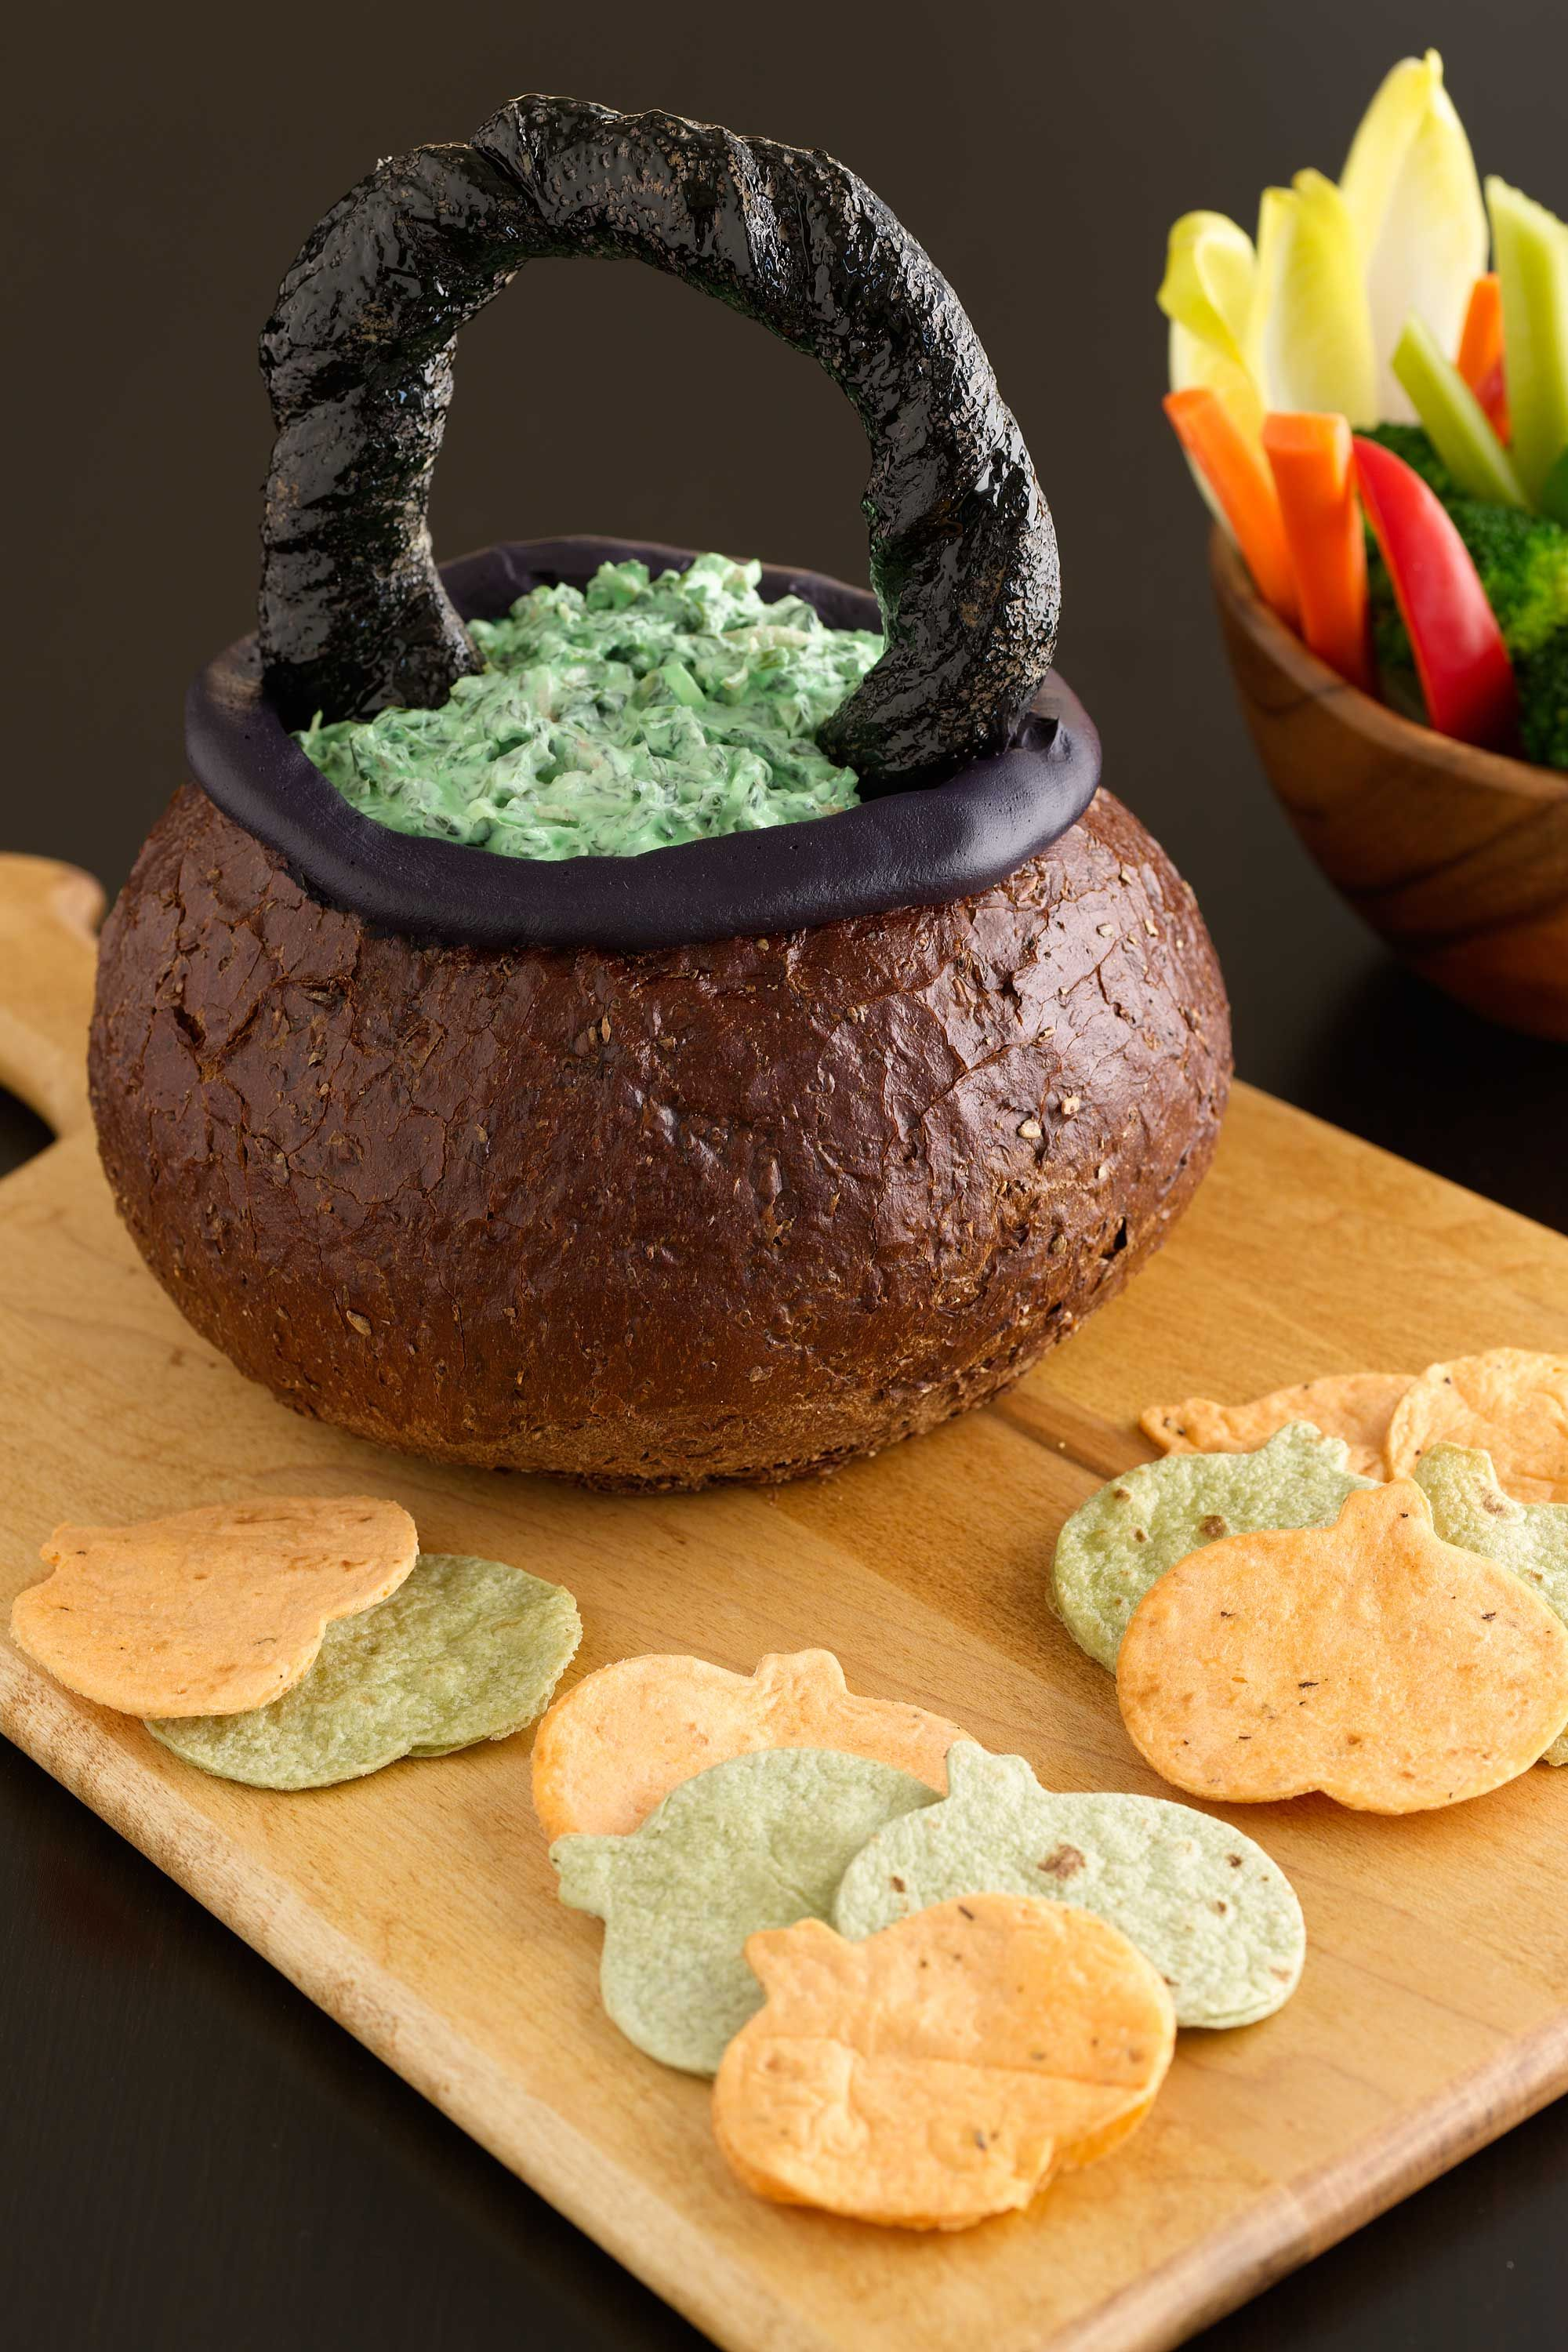 Liven up your home's curb appeal by decorating for the holiday season, starting with halloween. Spooky Spinach Dip in Bread Bowl Cauldron